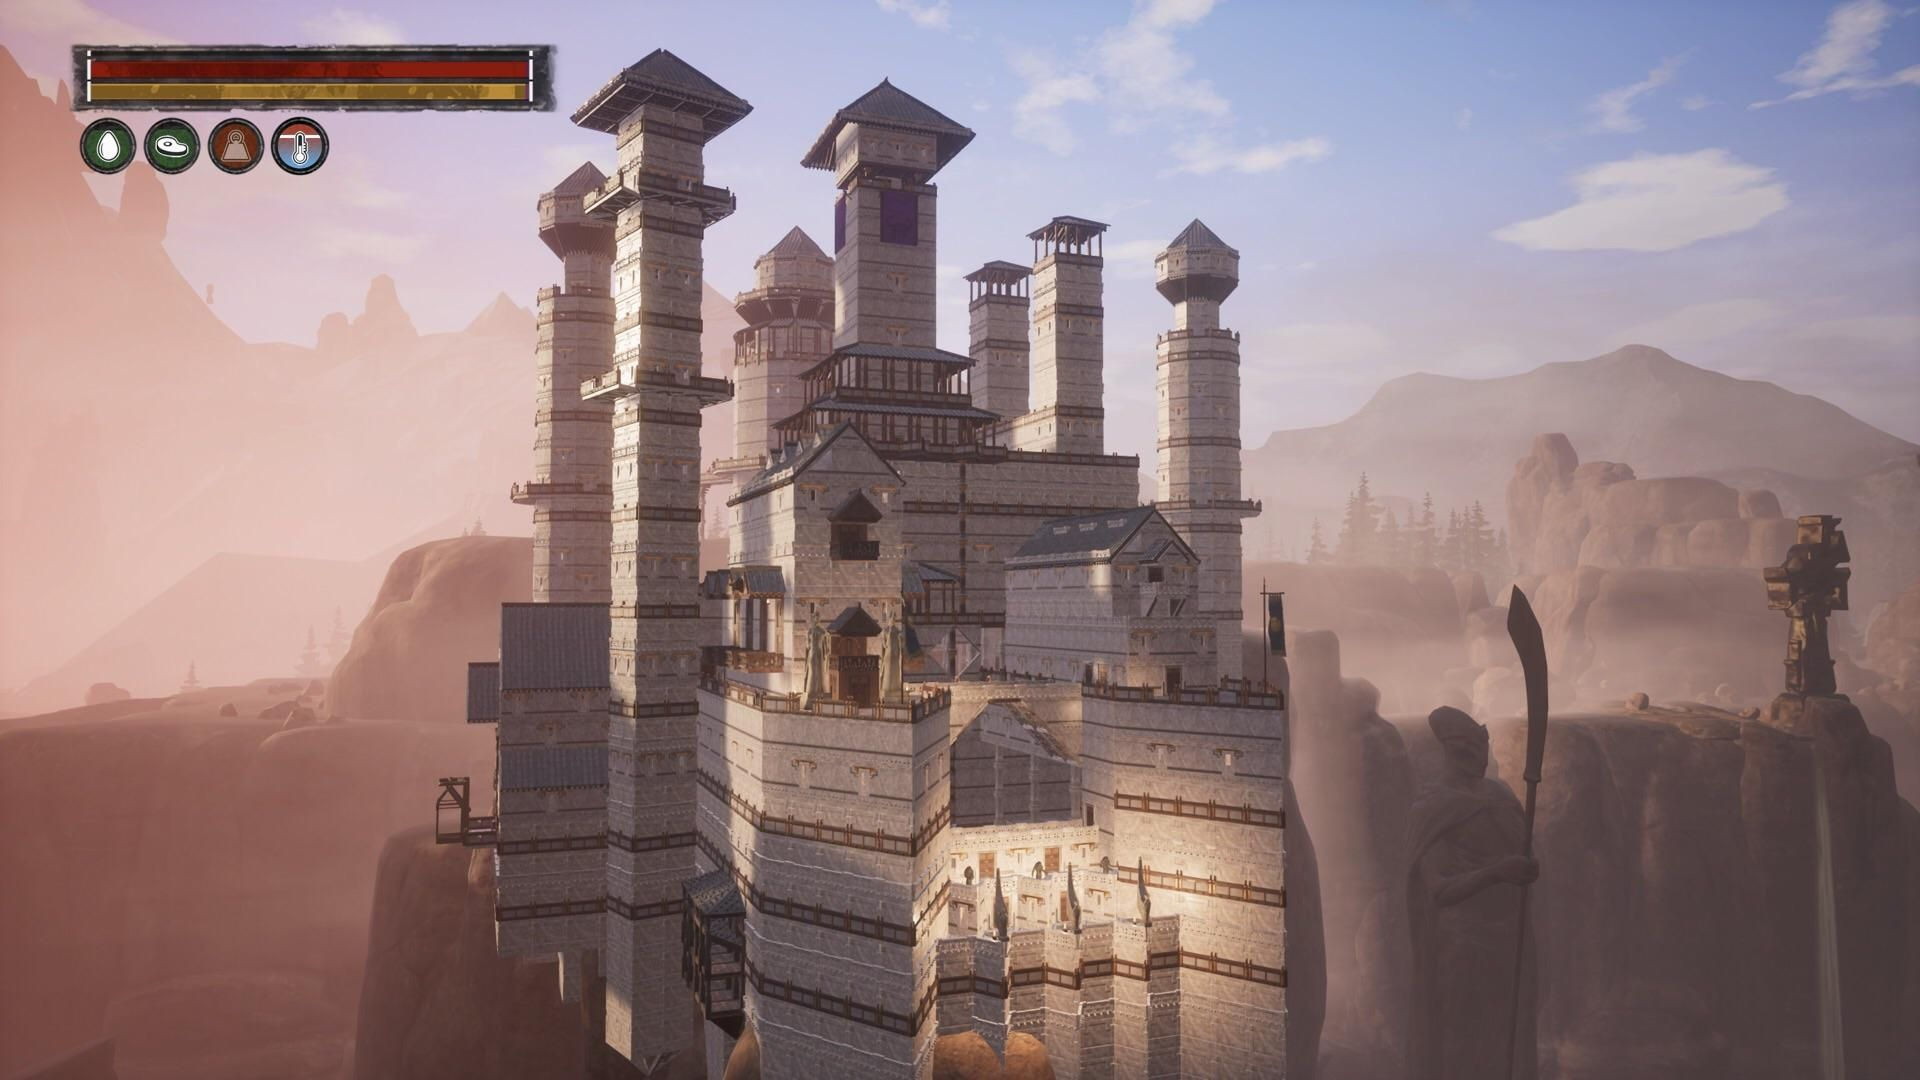 I Created The Eyrie From Game Of Thrones Architectxiles Conanexiles Conan Exiles Conan The Barbarian Survival Games